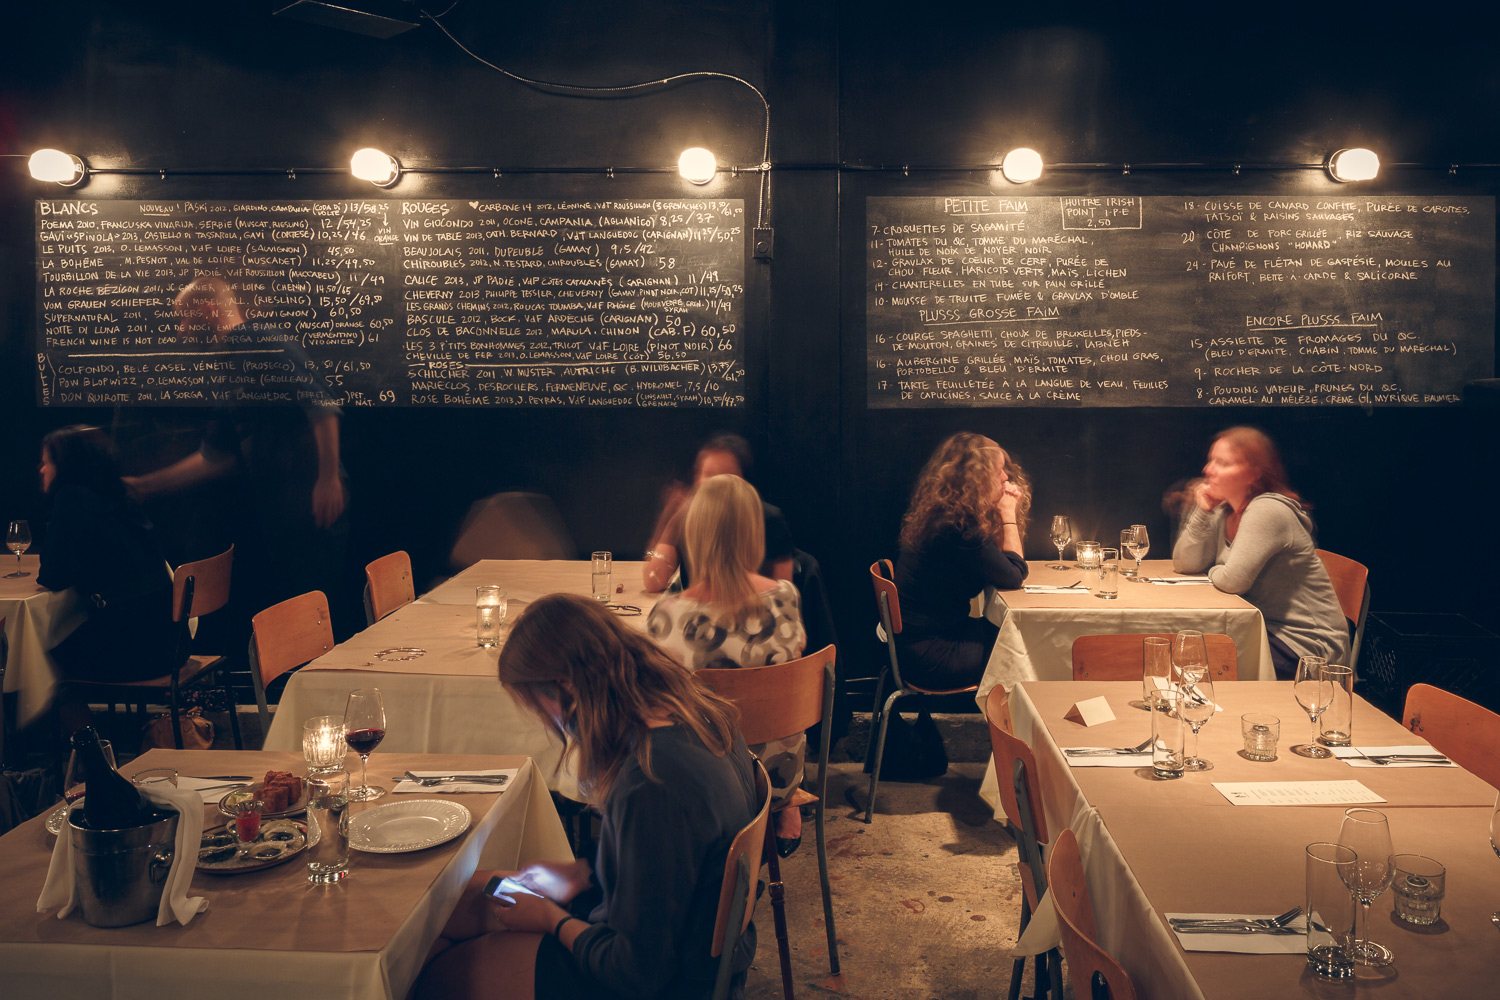 View of the dining room at the Manitoba restaurant. Sober table with white tablecloth and Kraft paper sheet. The back wall painted in black displays two large slate menus with 5 wall lights